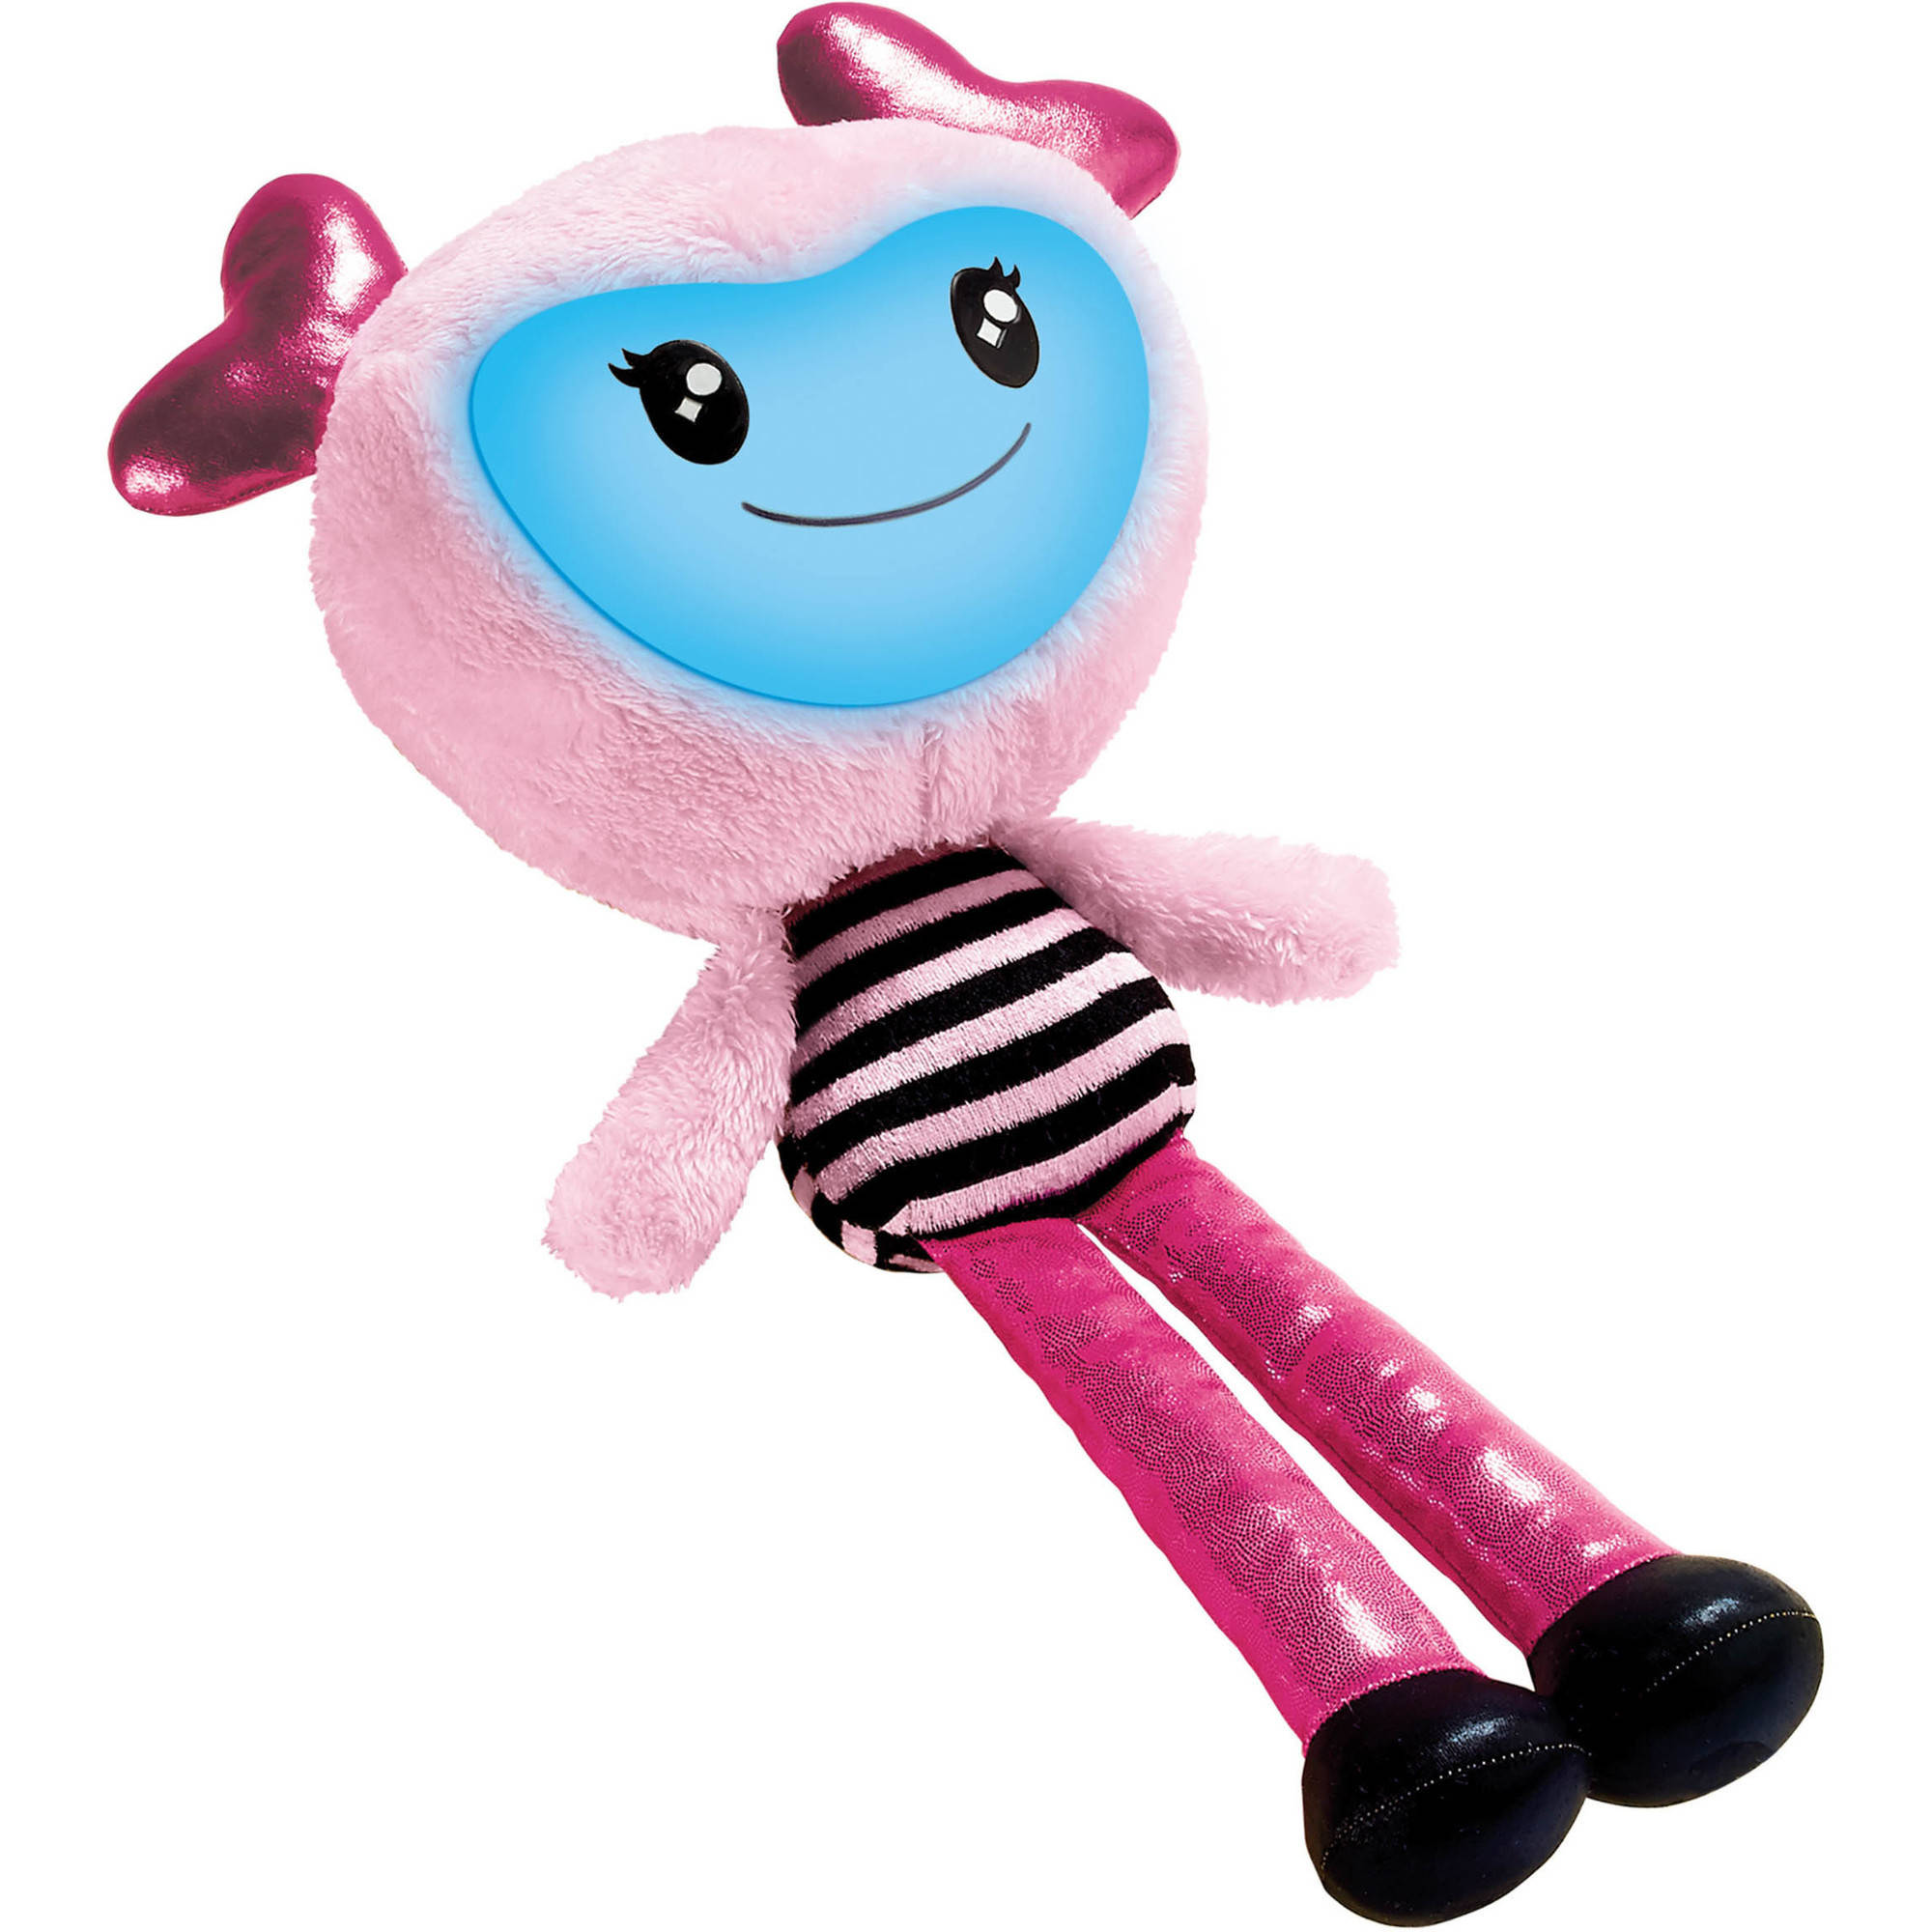 "Brightlings Interactive 15"" Pink Plush with Sound, Music, and Phrases"